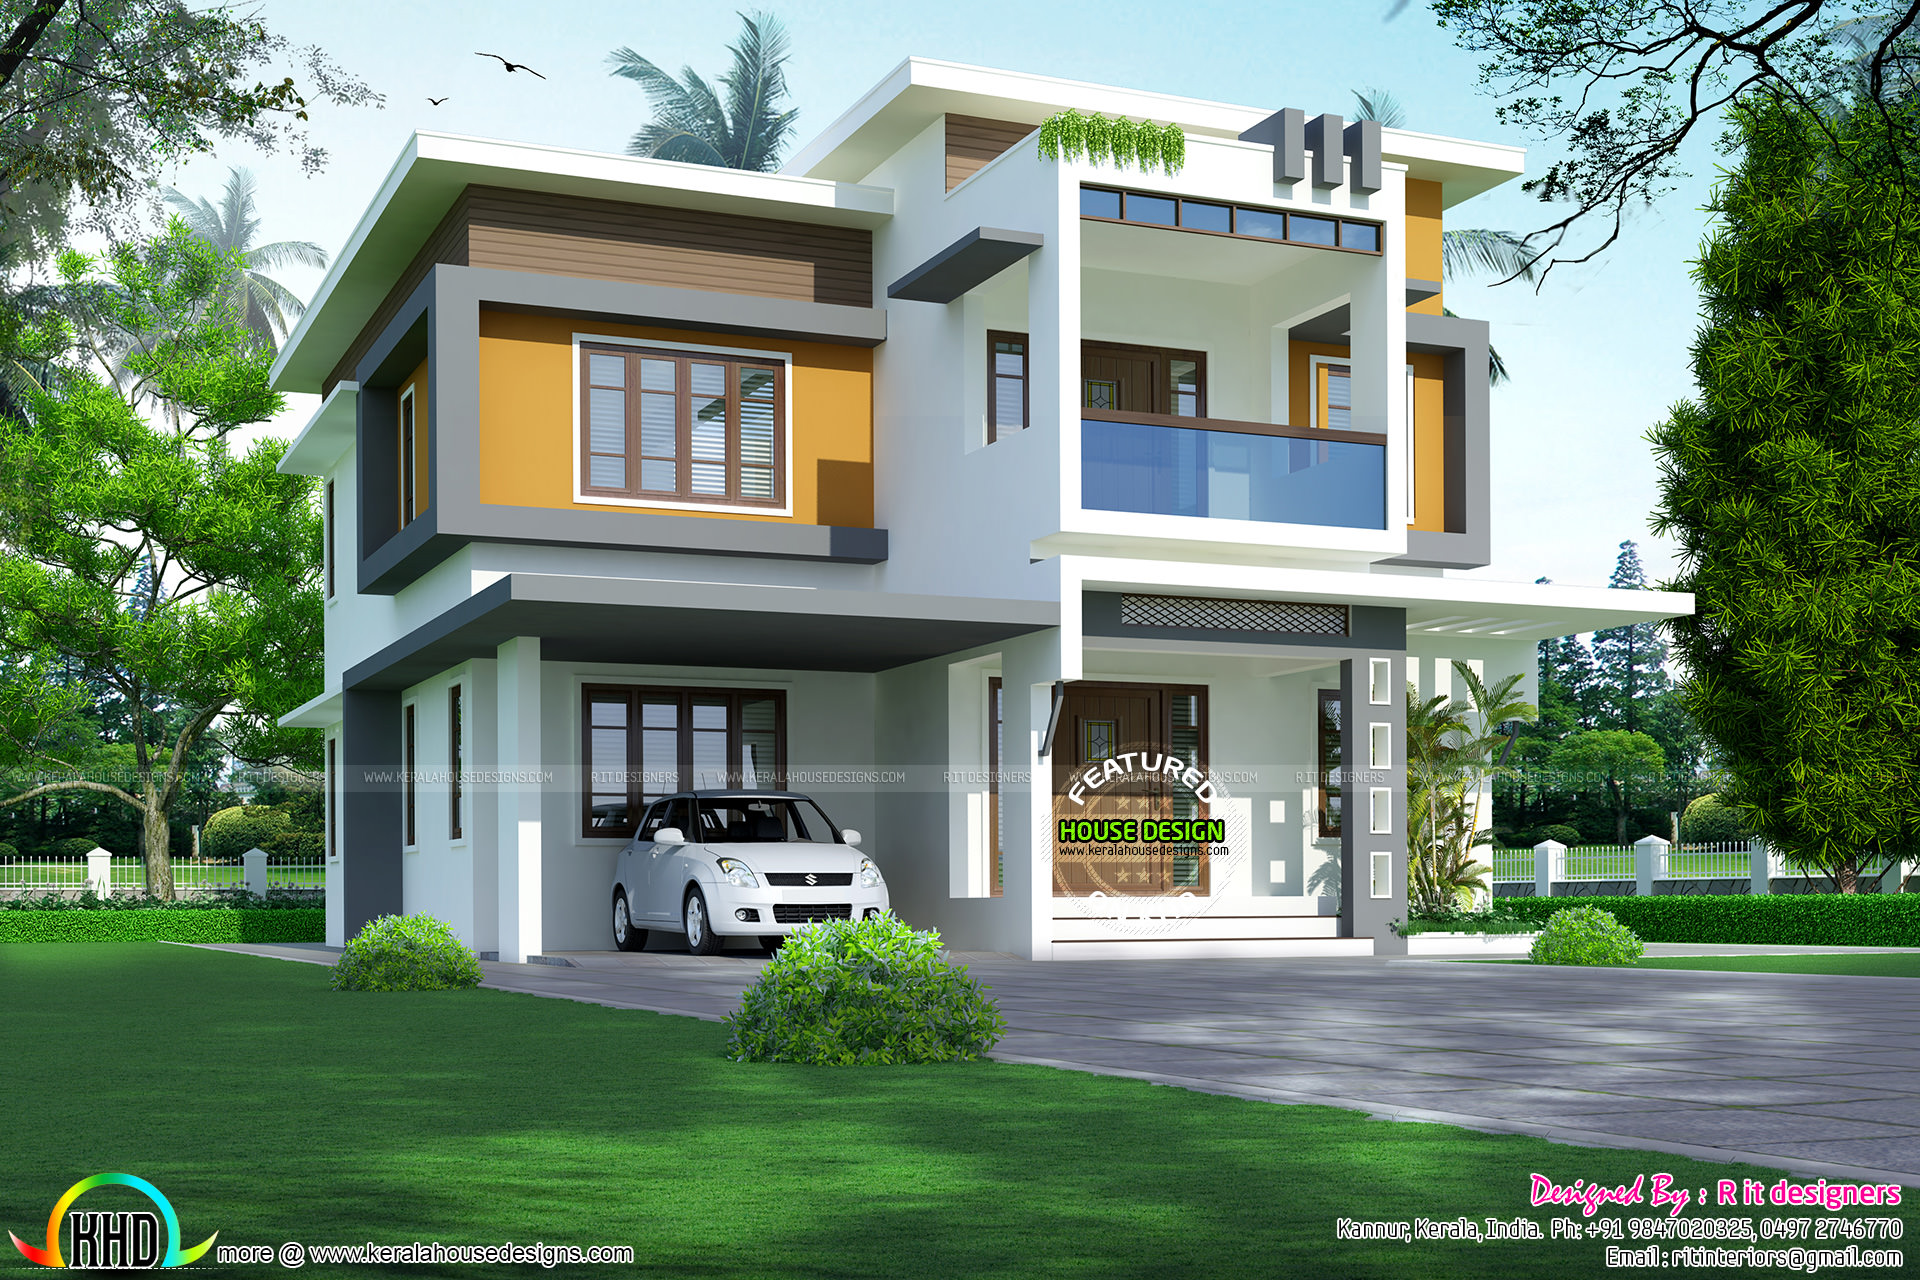 Colorful modern home plan 2400 sq ft kerala home design for Modern house plans 2400 sq ft